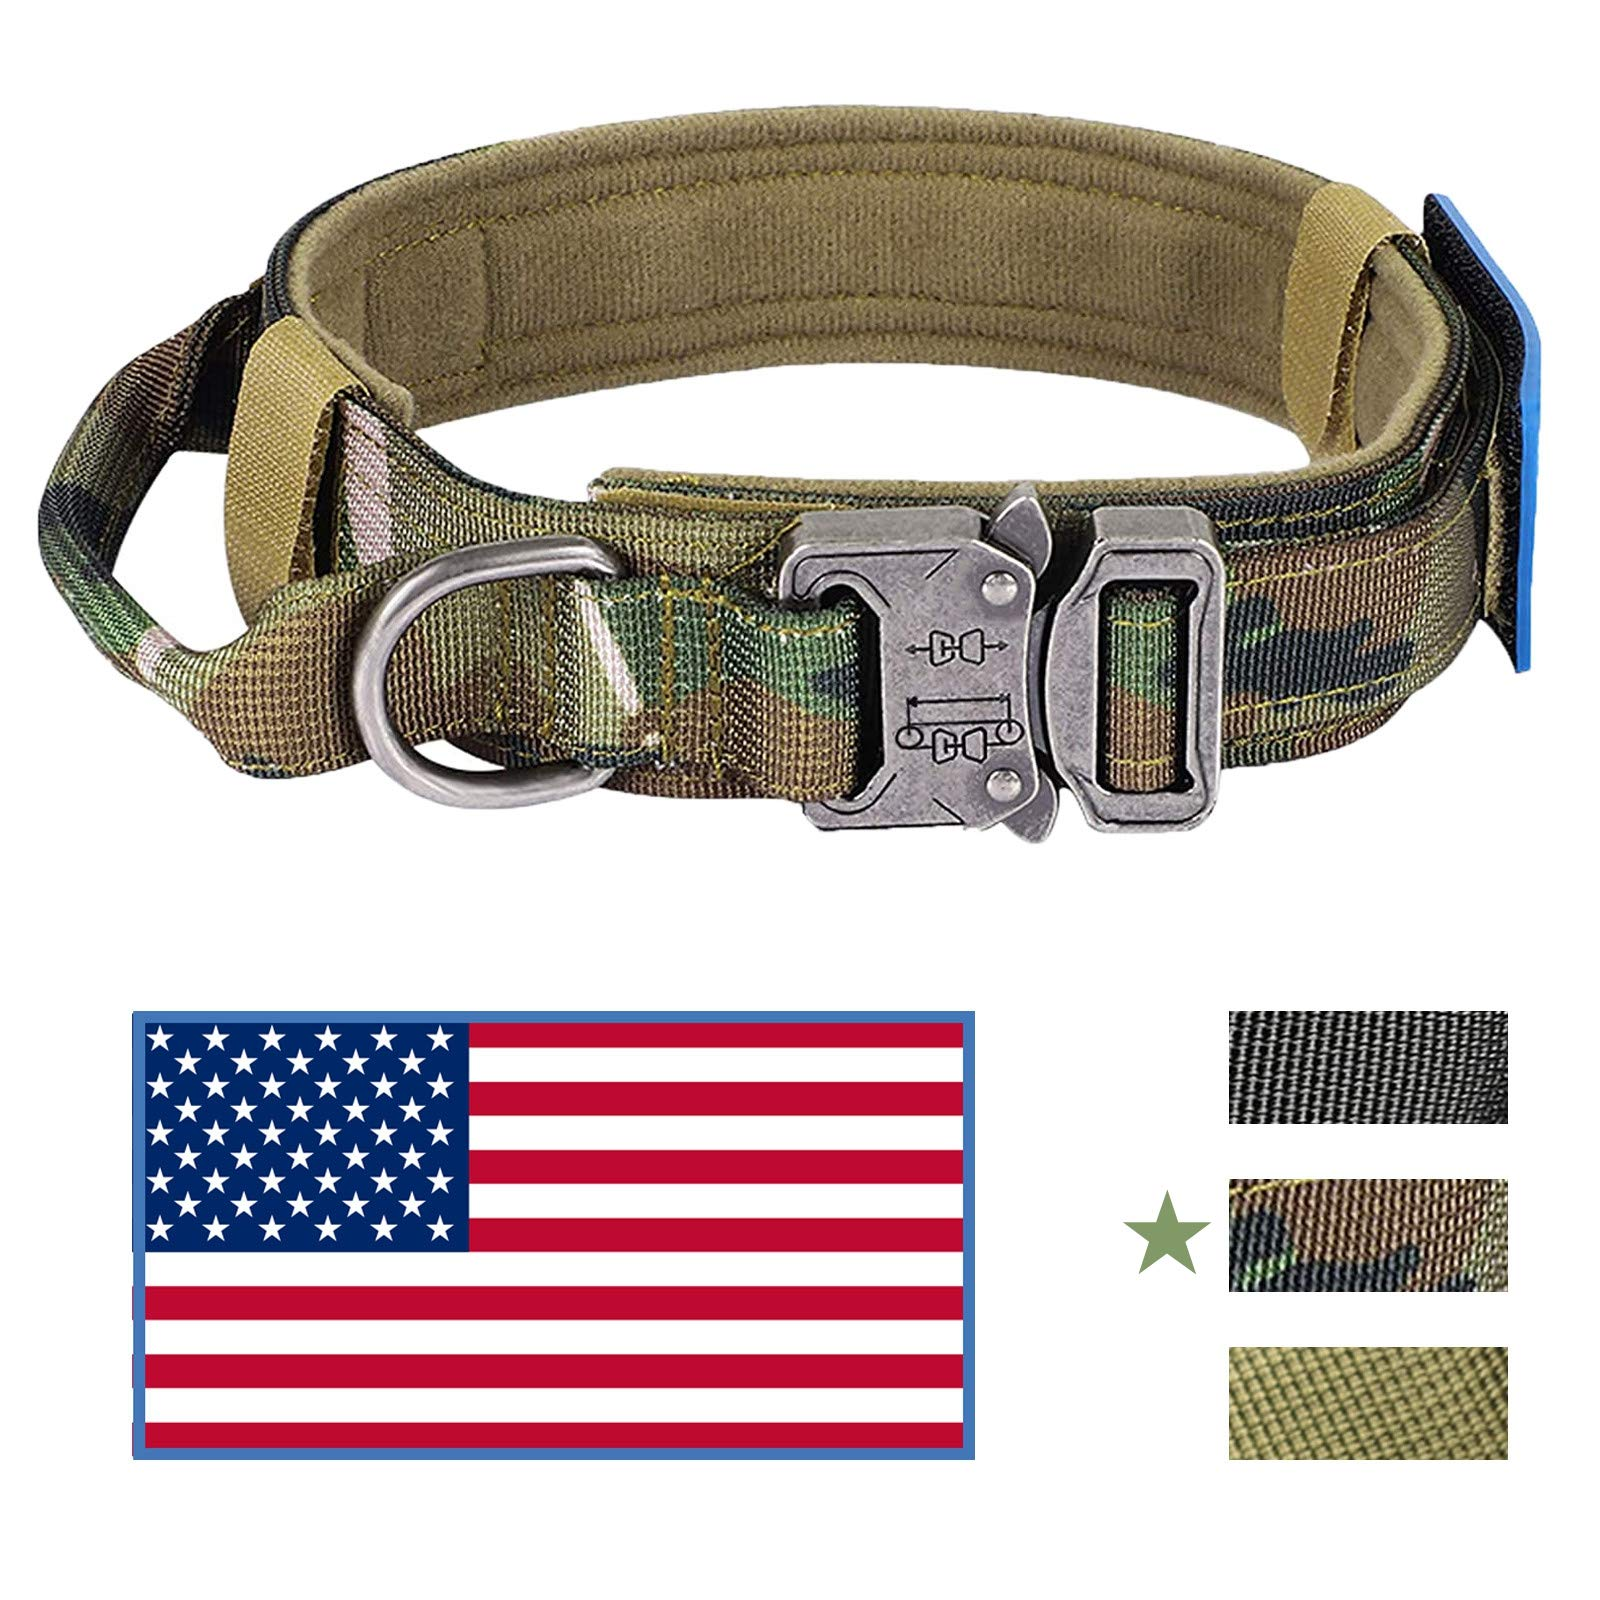 KUSSONLI Dog Collar for Medium Large Dogs,Soft Comfortable Adjustable Collars Sizes,Double-Layer Thick Military Specification Nylon Zinc Alloy Metal Safety Locking Buckle,American Flag,Camo,L